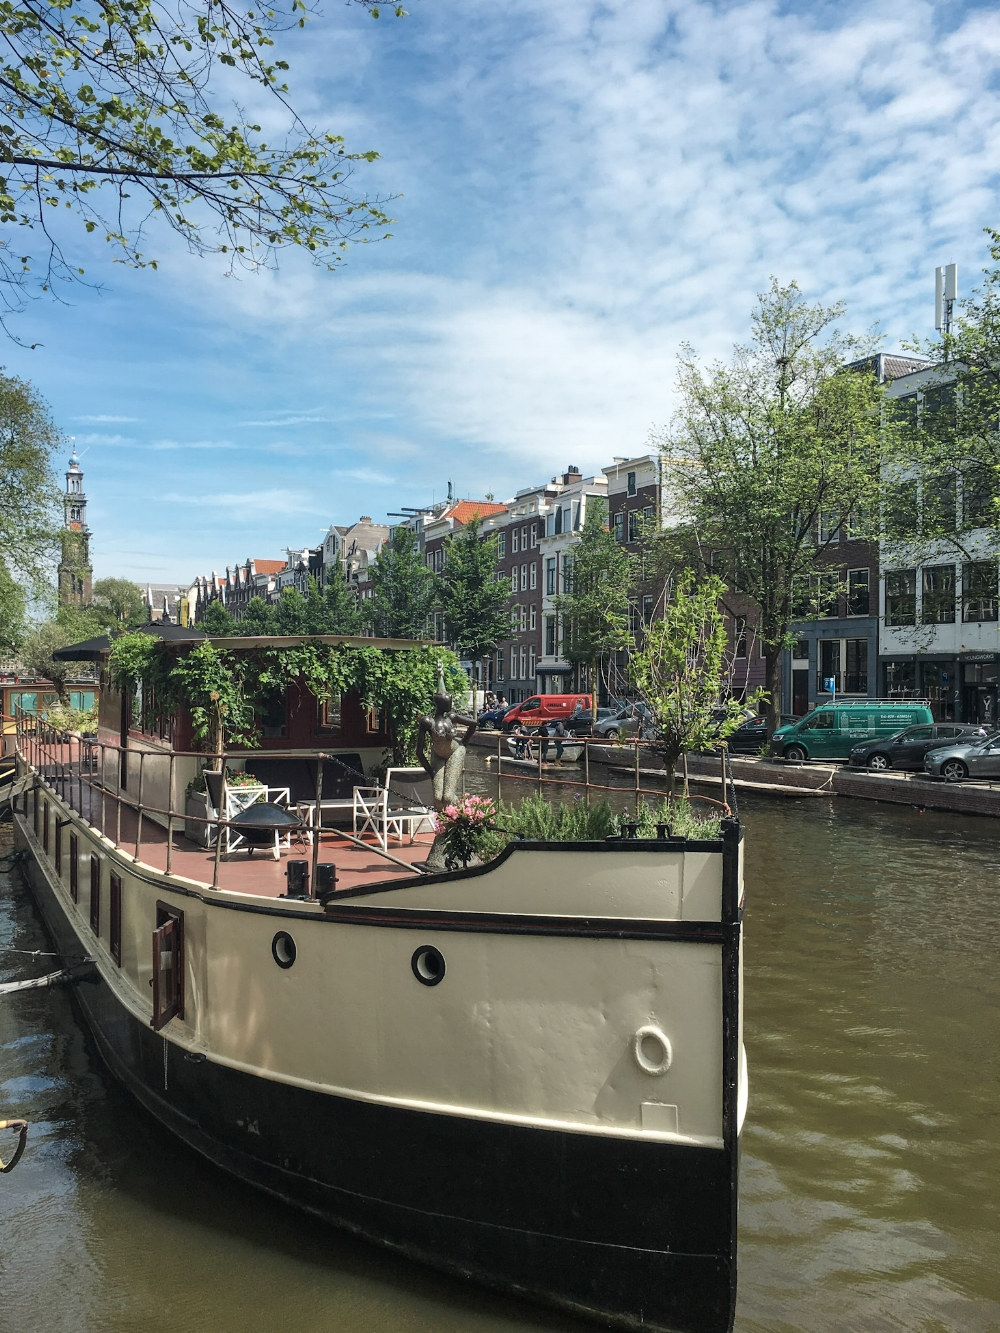 curio.trips.amsterdam.canal.house.boat.jpg